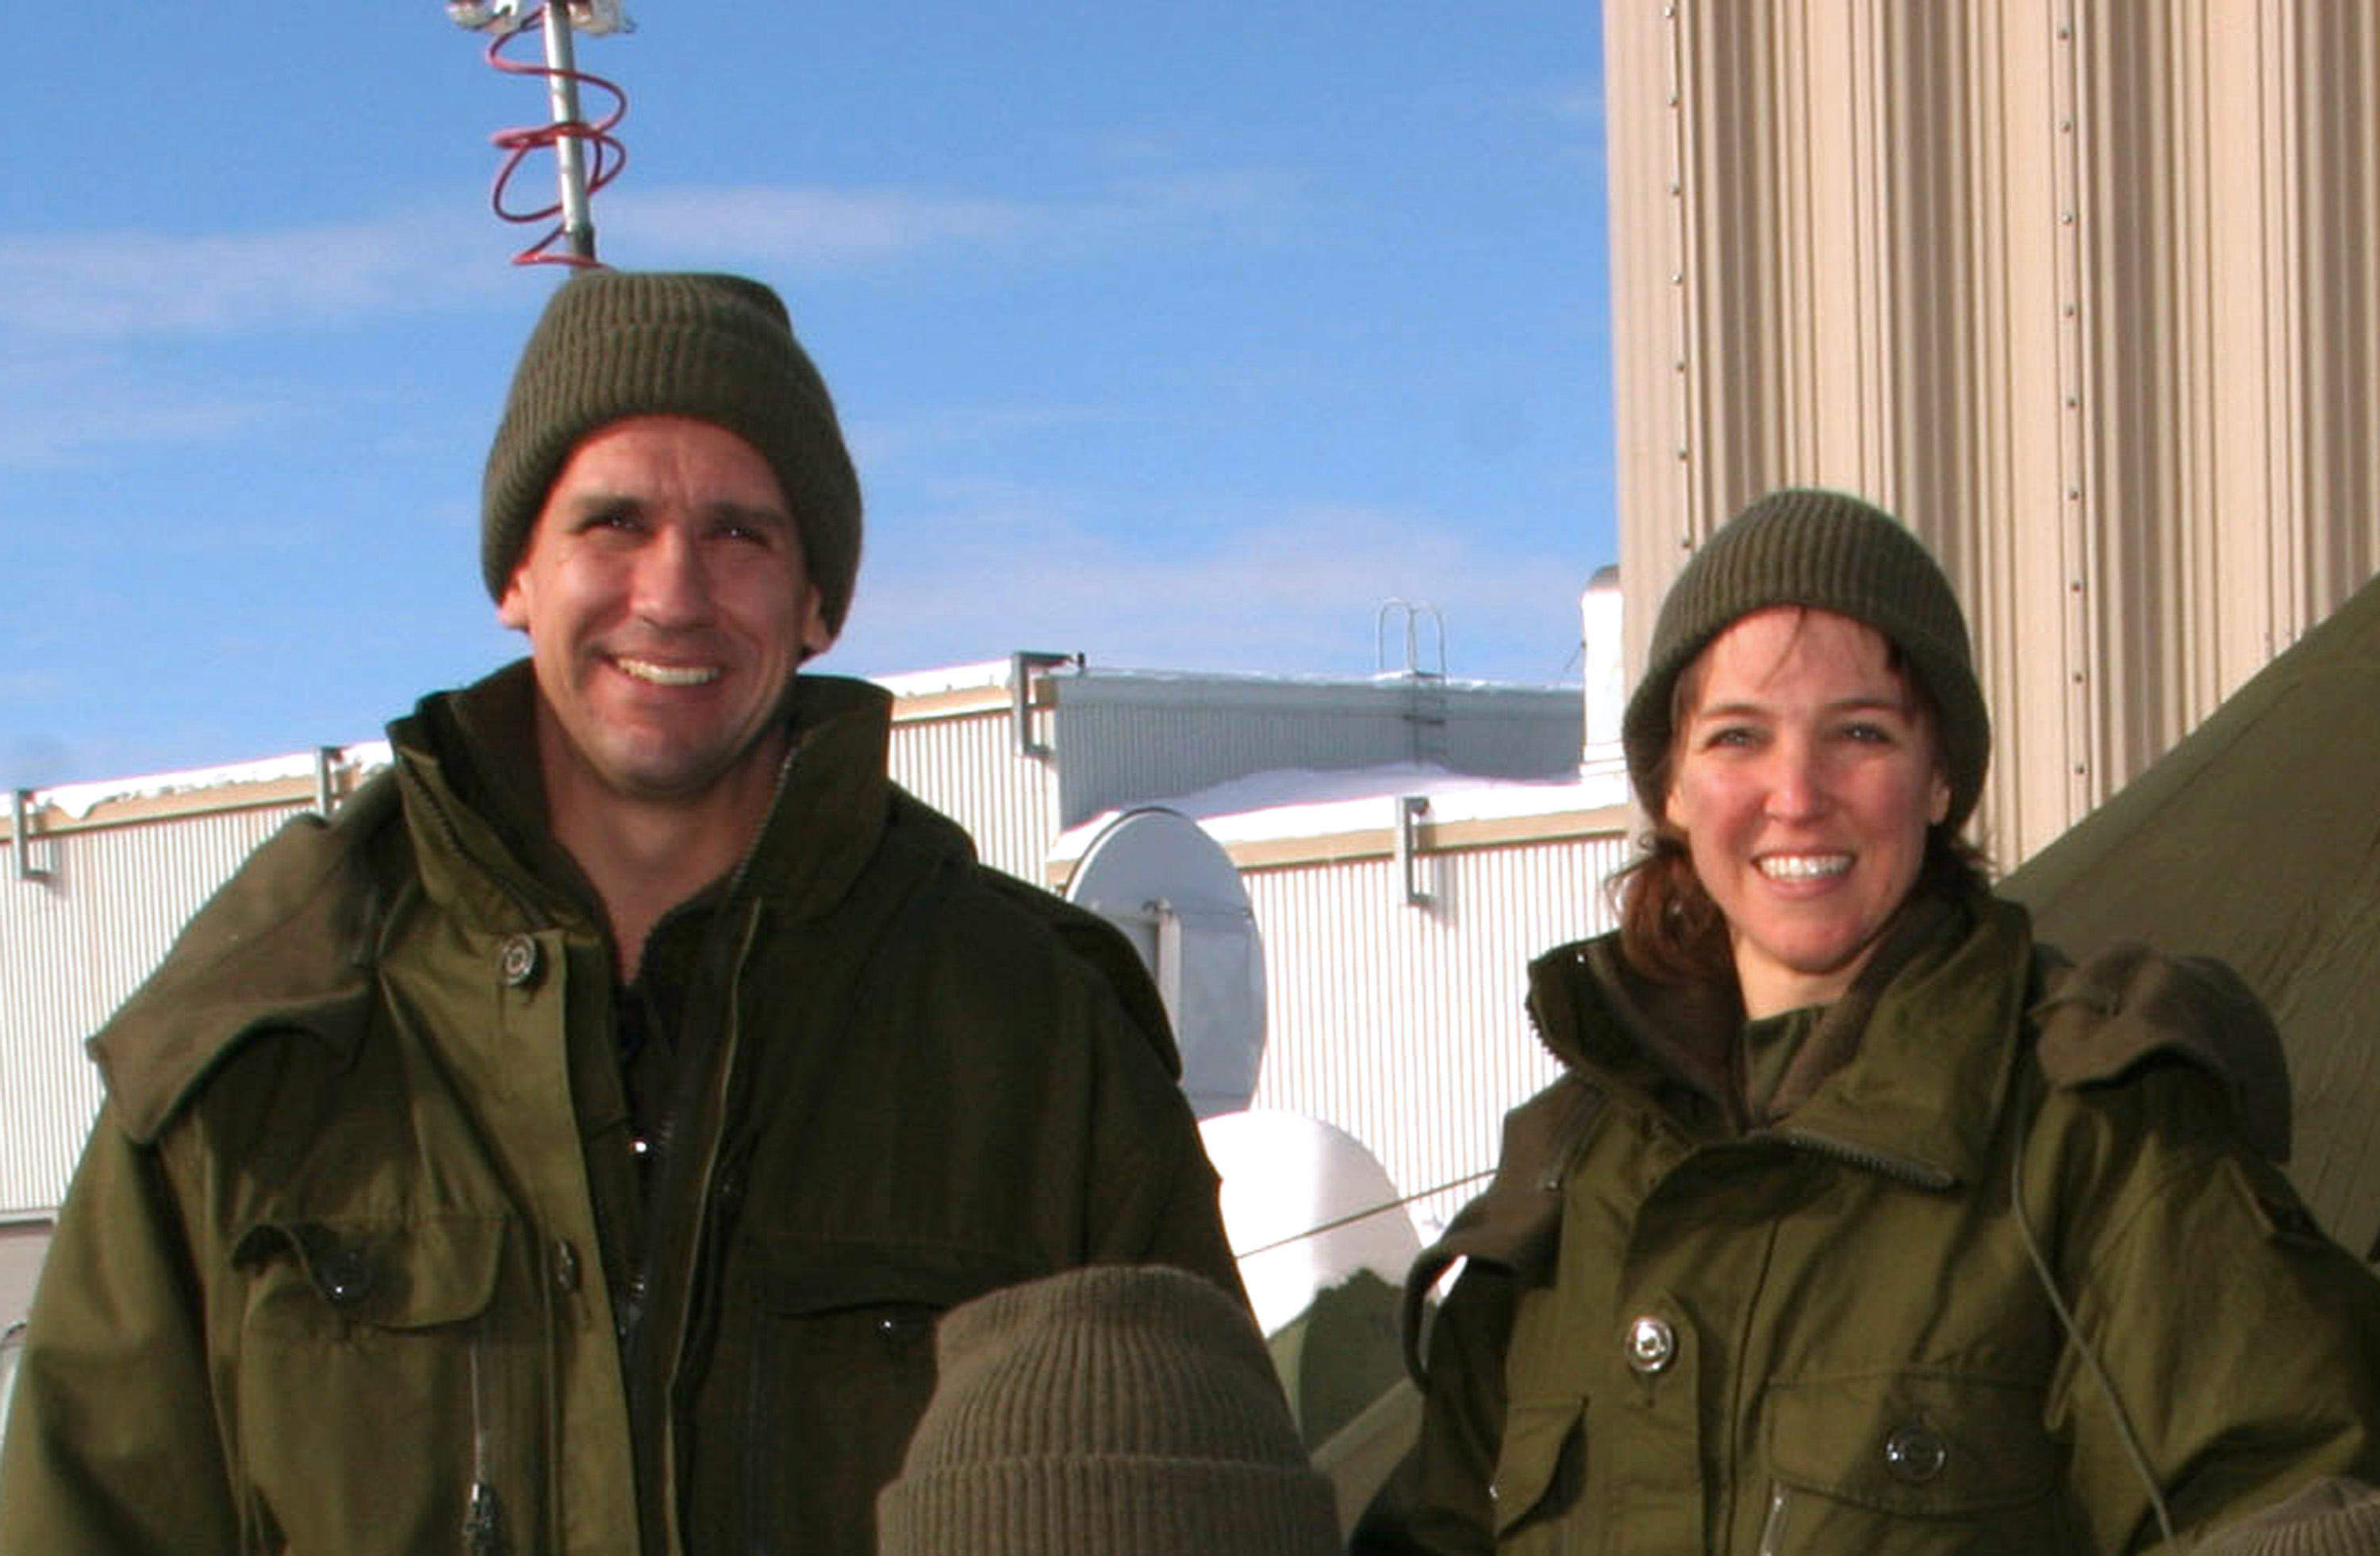 William Oefelein of NASA, left, and Lisa Nowak of NASA pose during winter training in Valcartier, Quebec, Canada, Jan. 21, 2004.